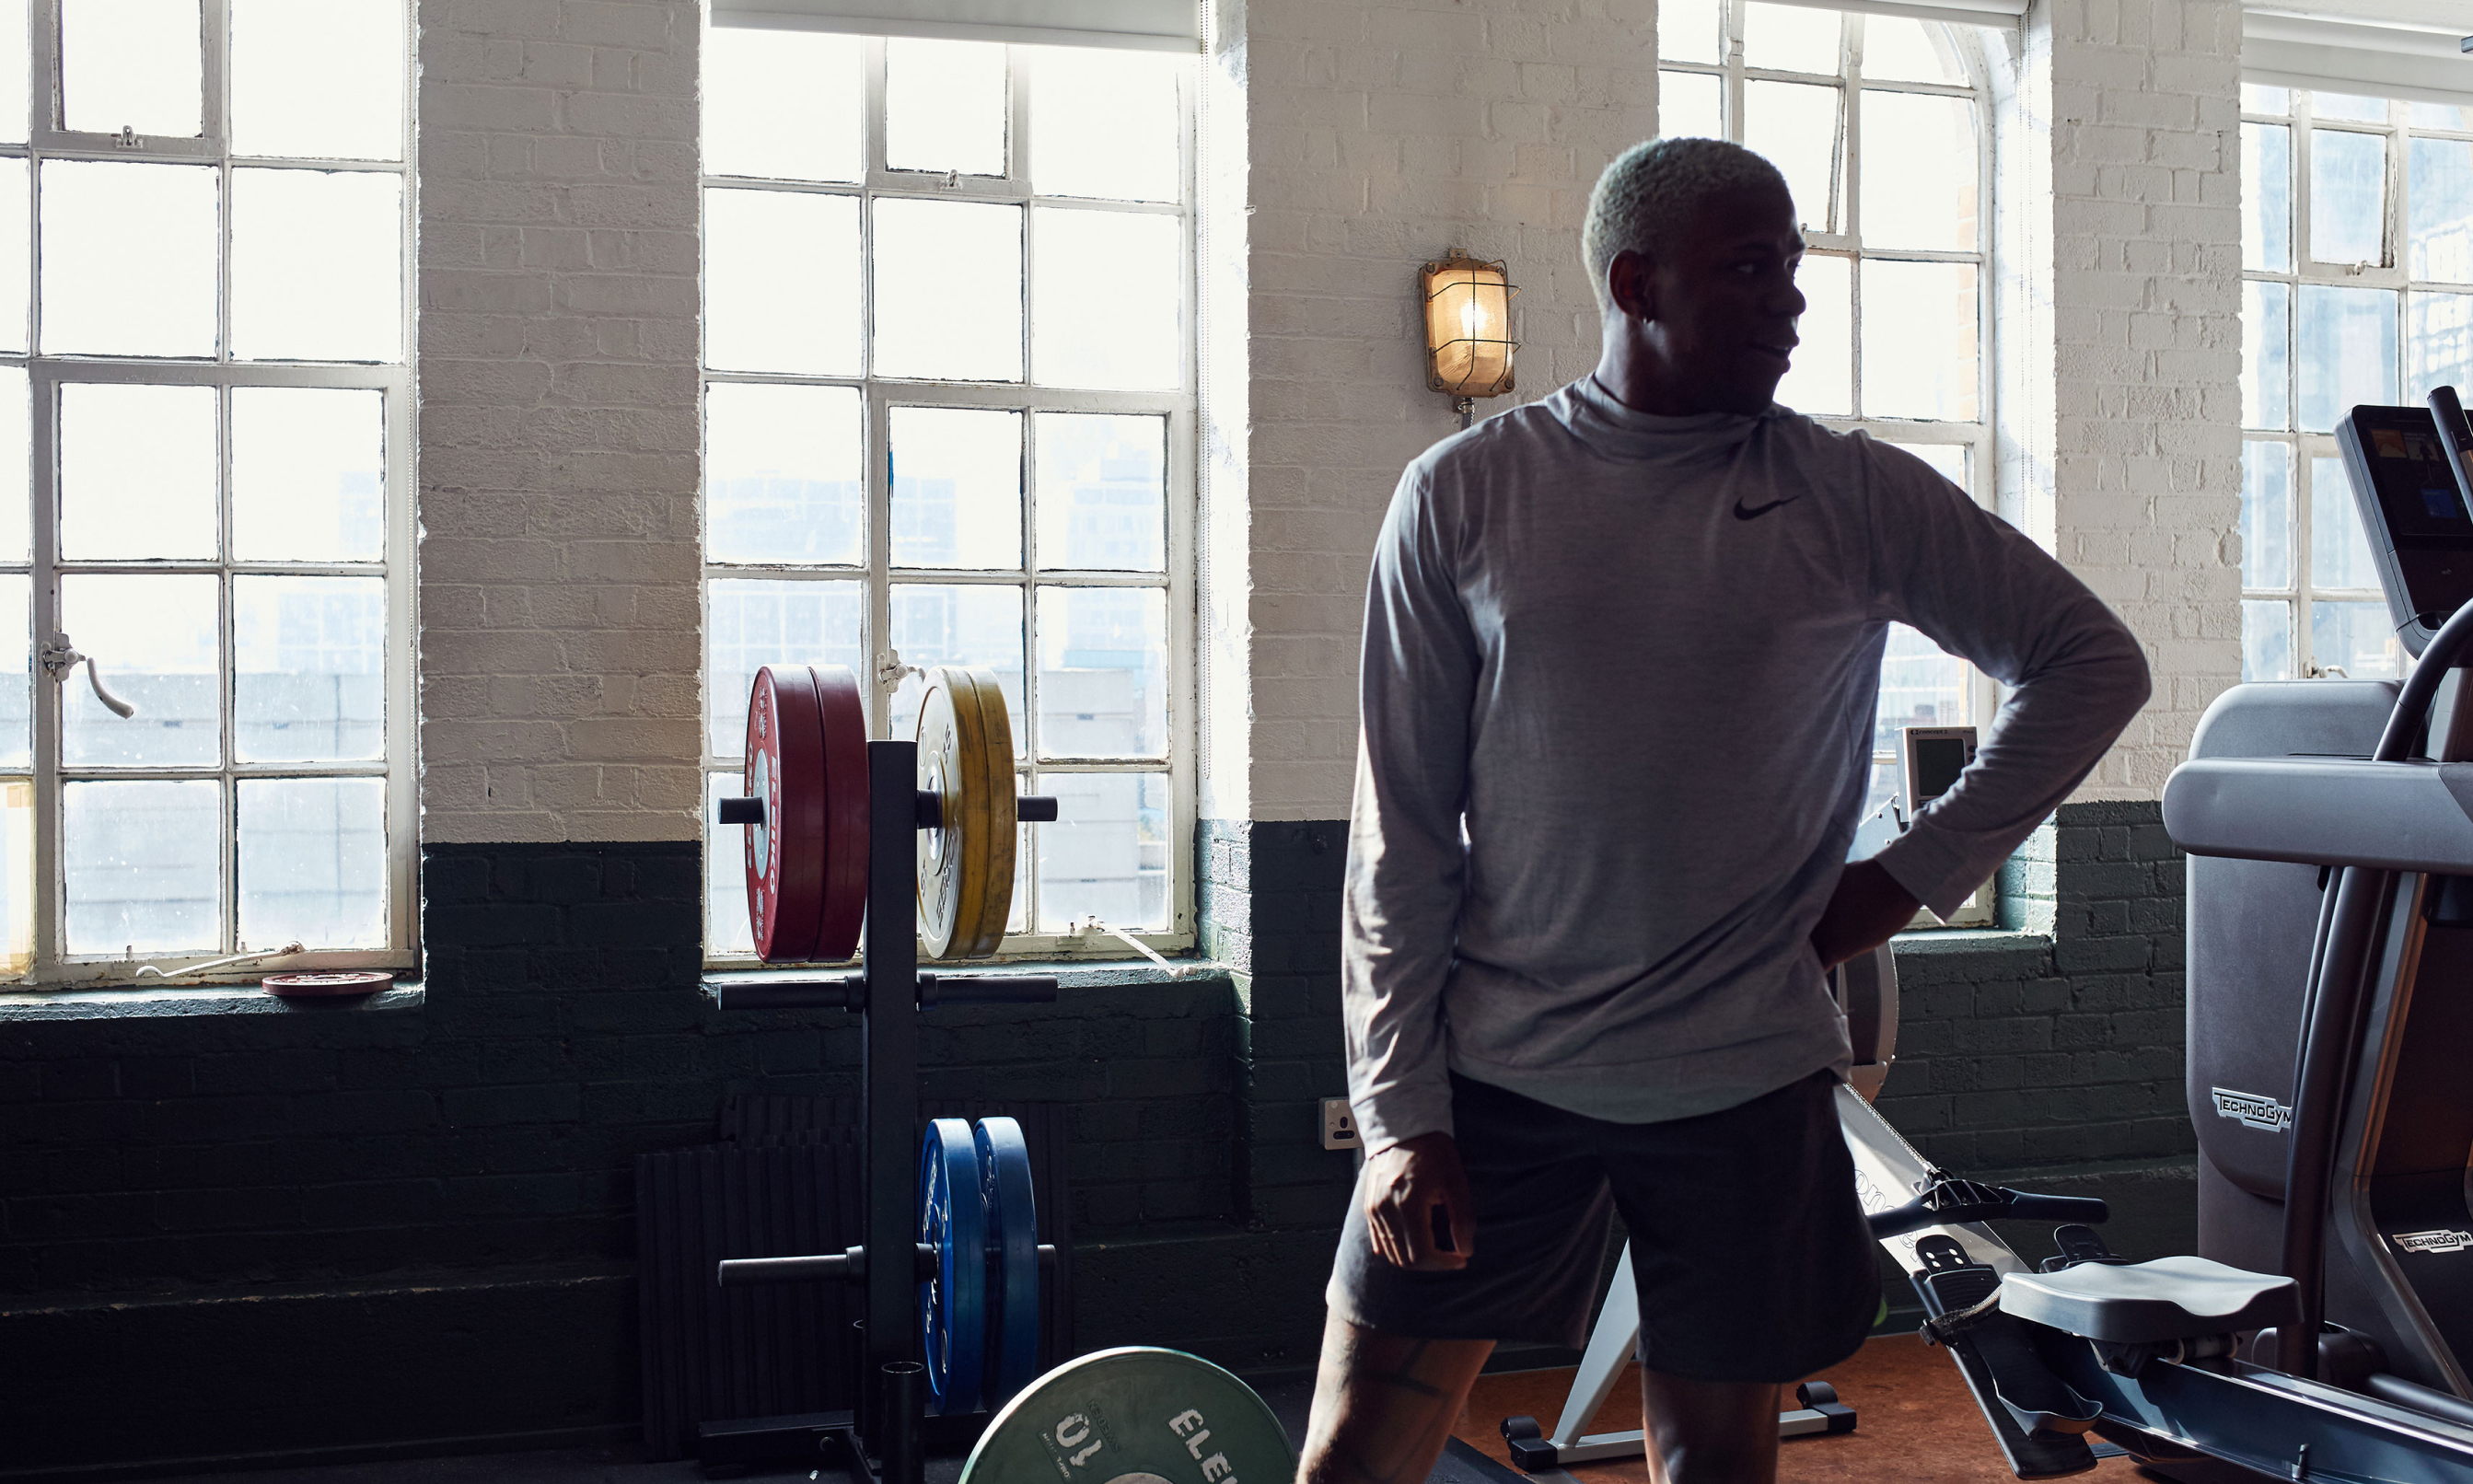 A man standing in a gym surrounded by weights.